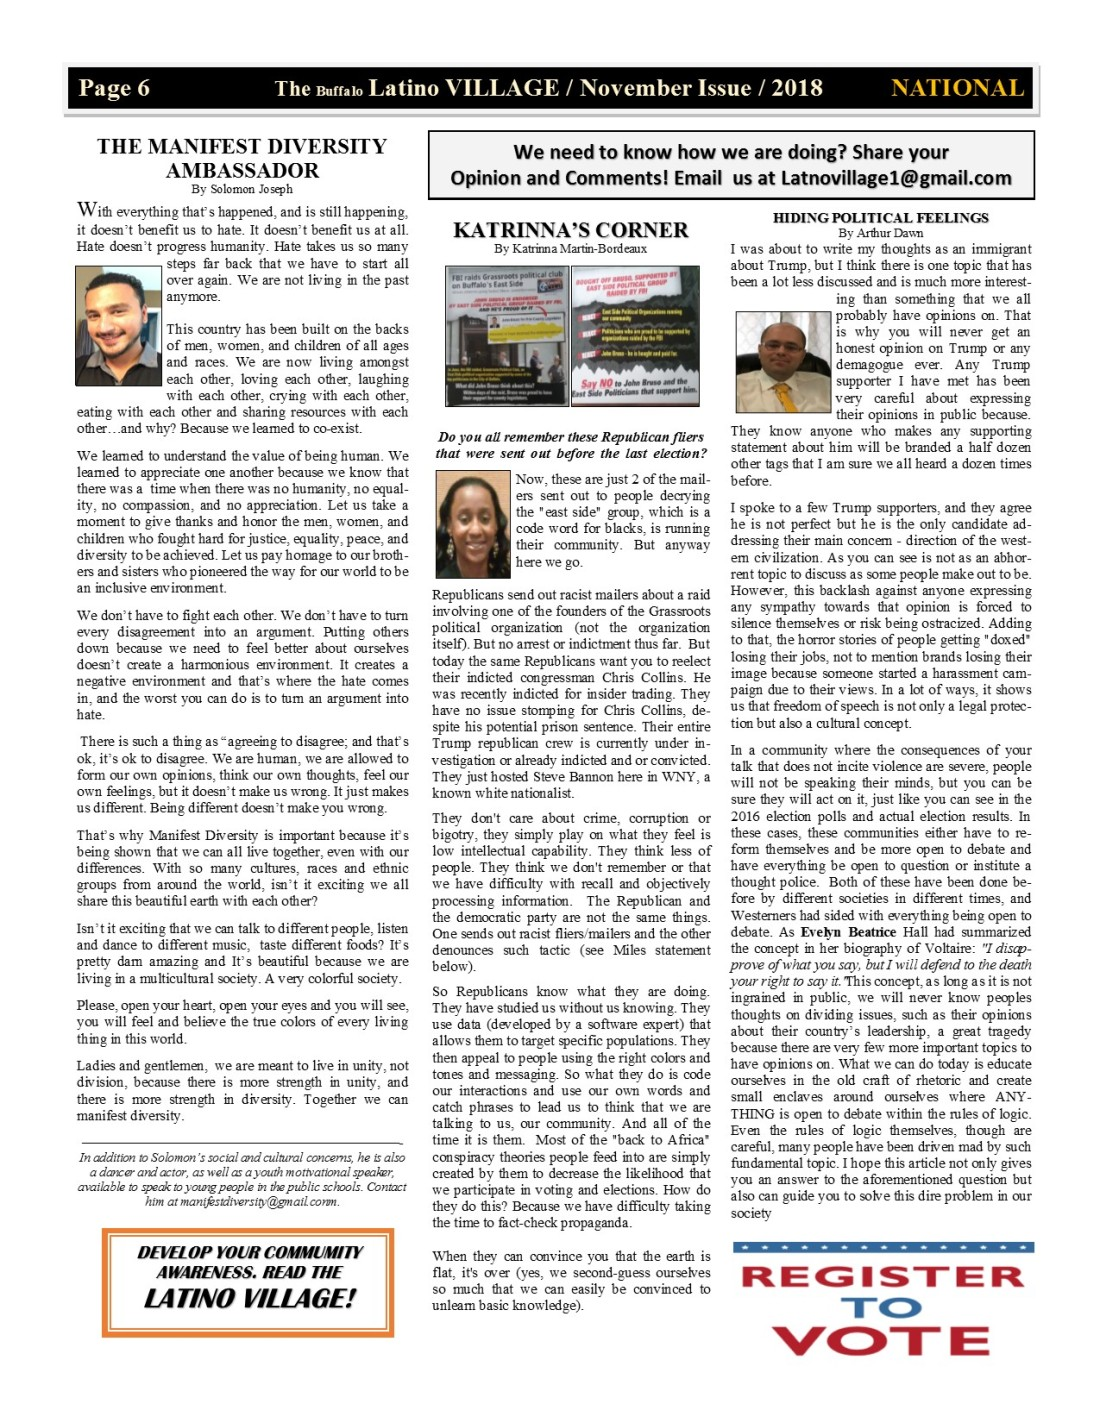 Page 6 Latino Village Newslette November Issue No 13